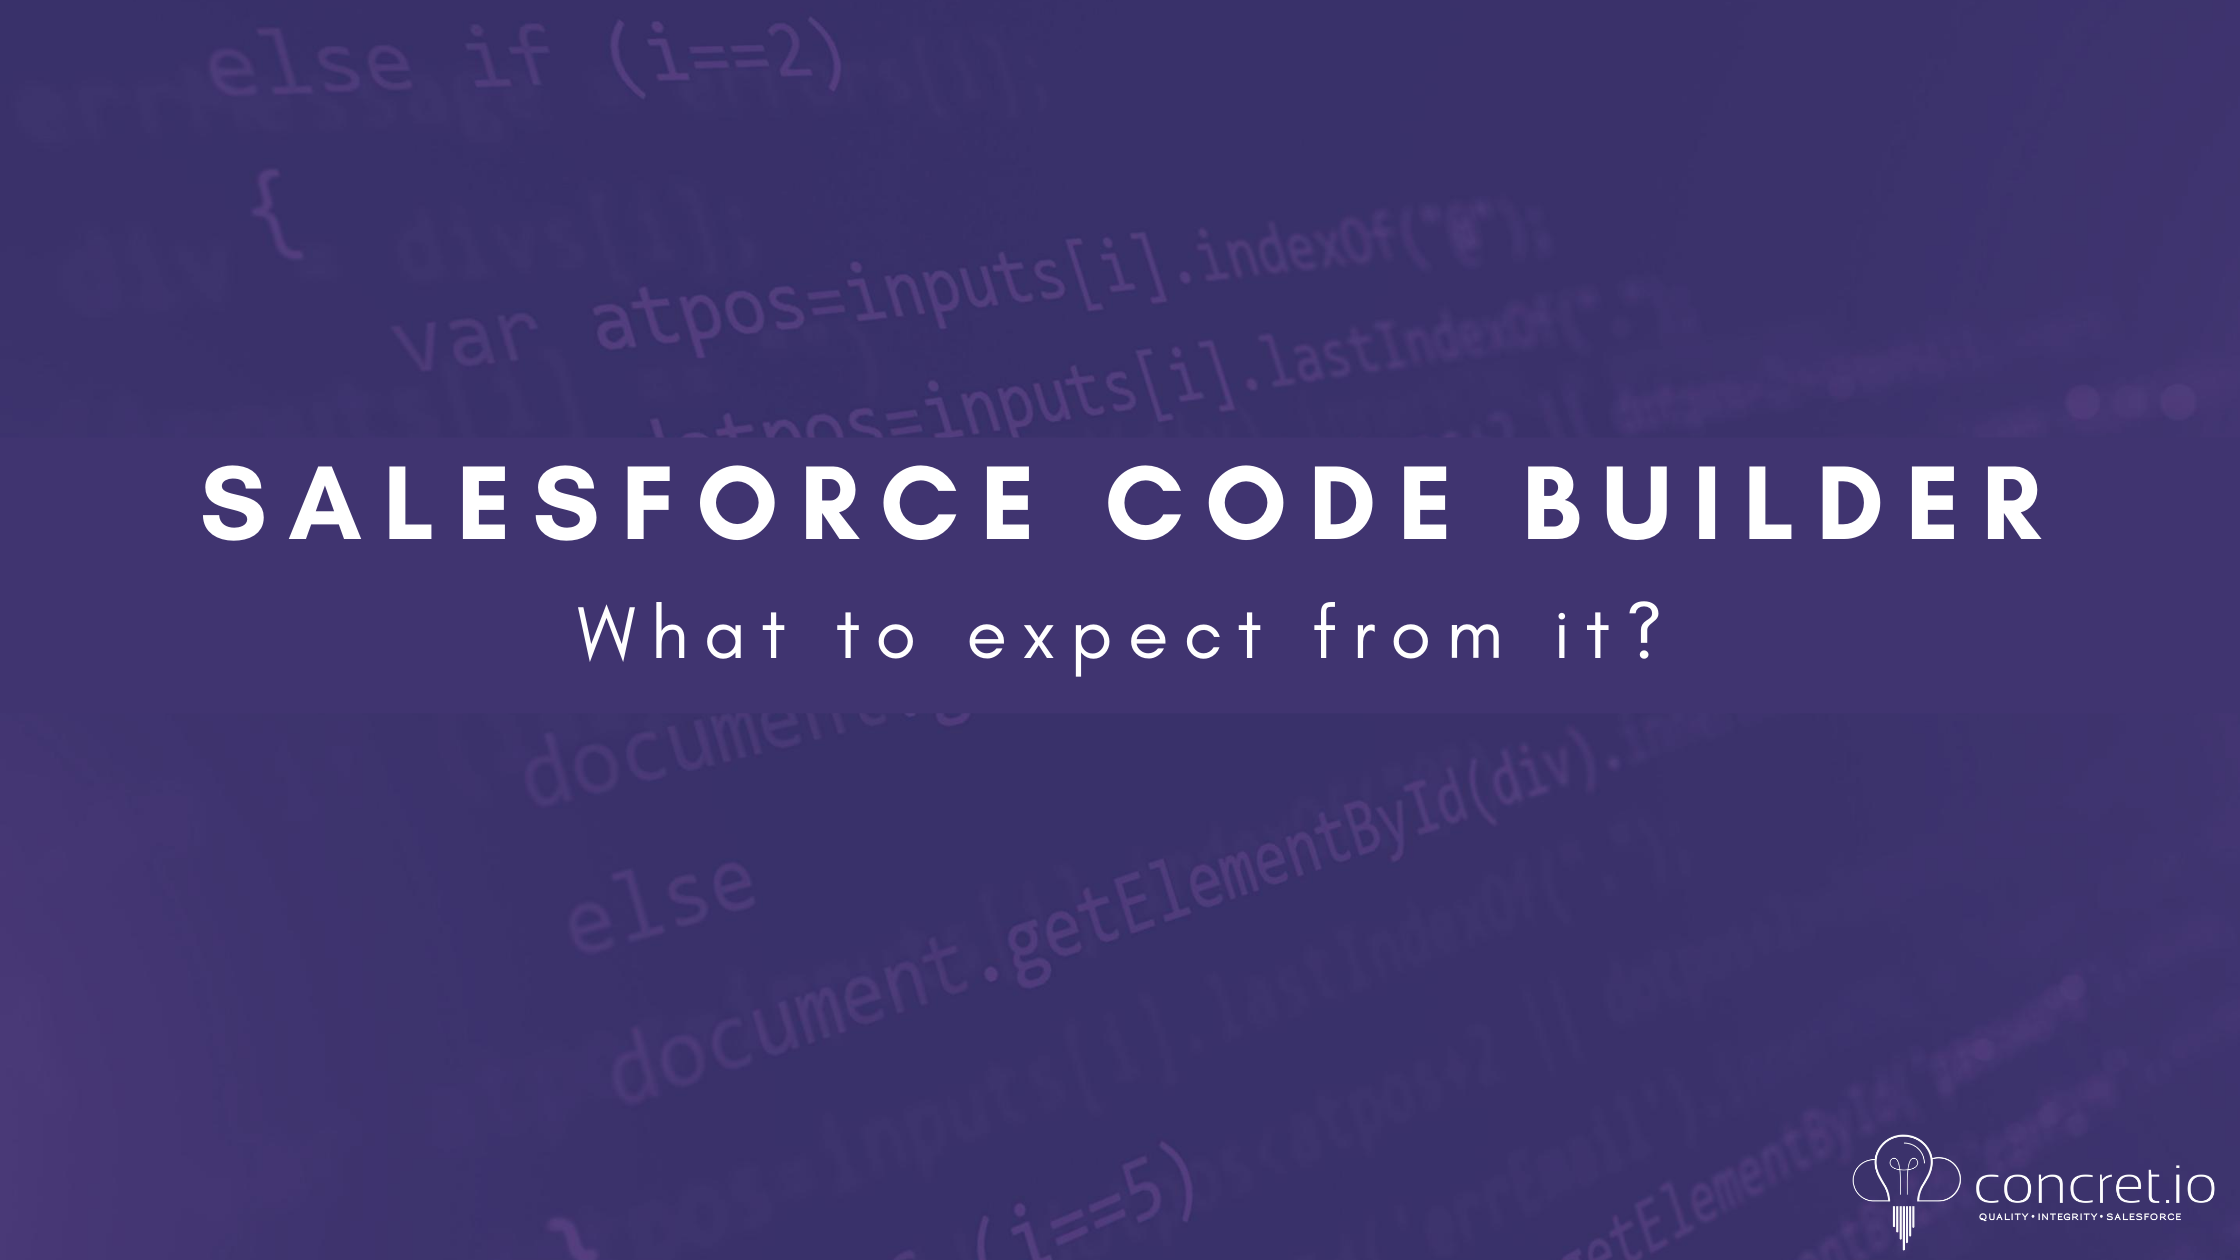 Salesforce Code Builder - What to expect from it?